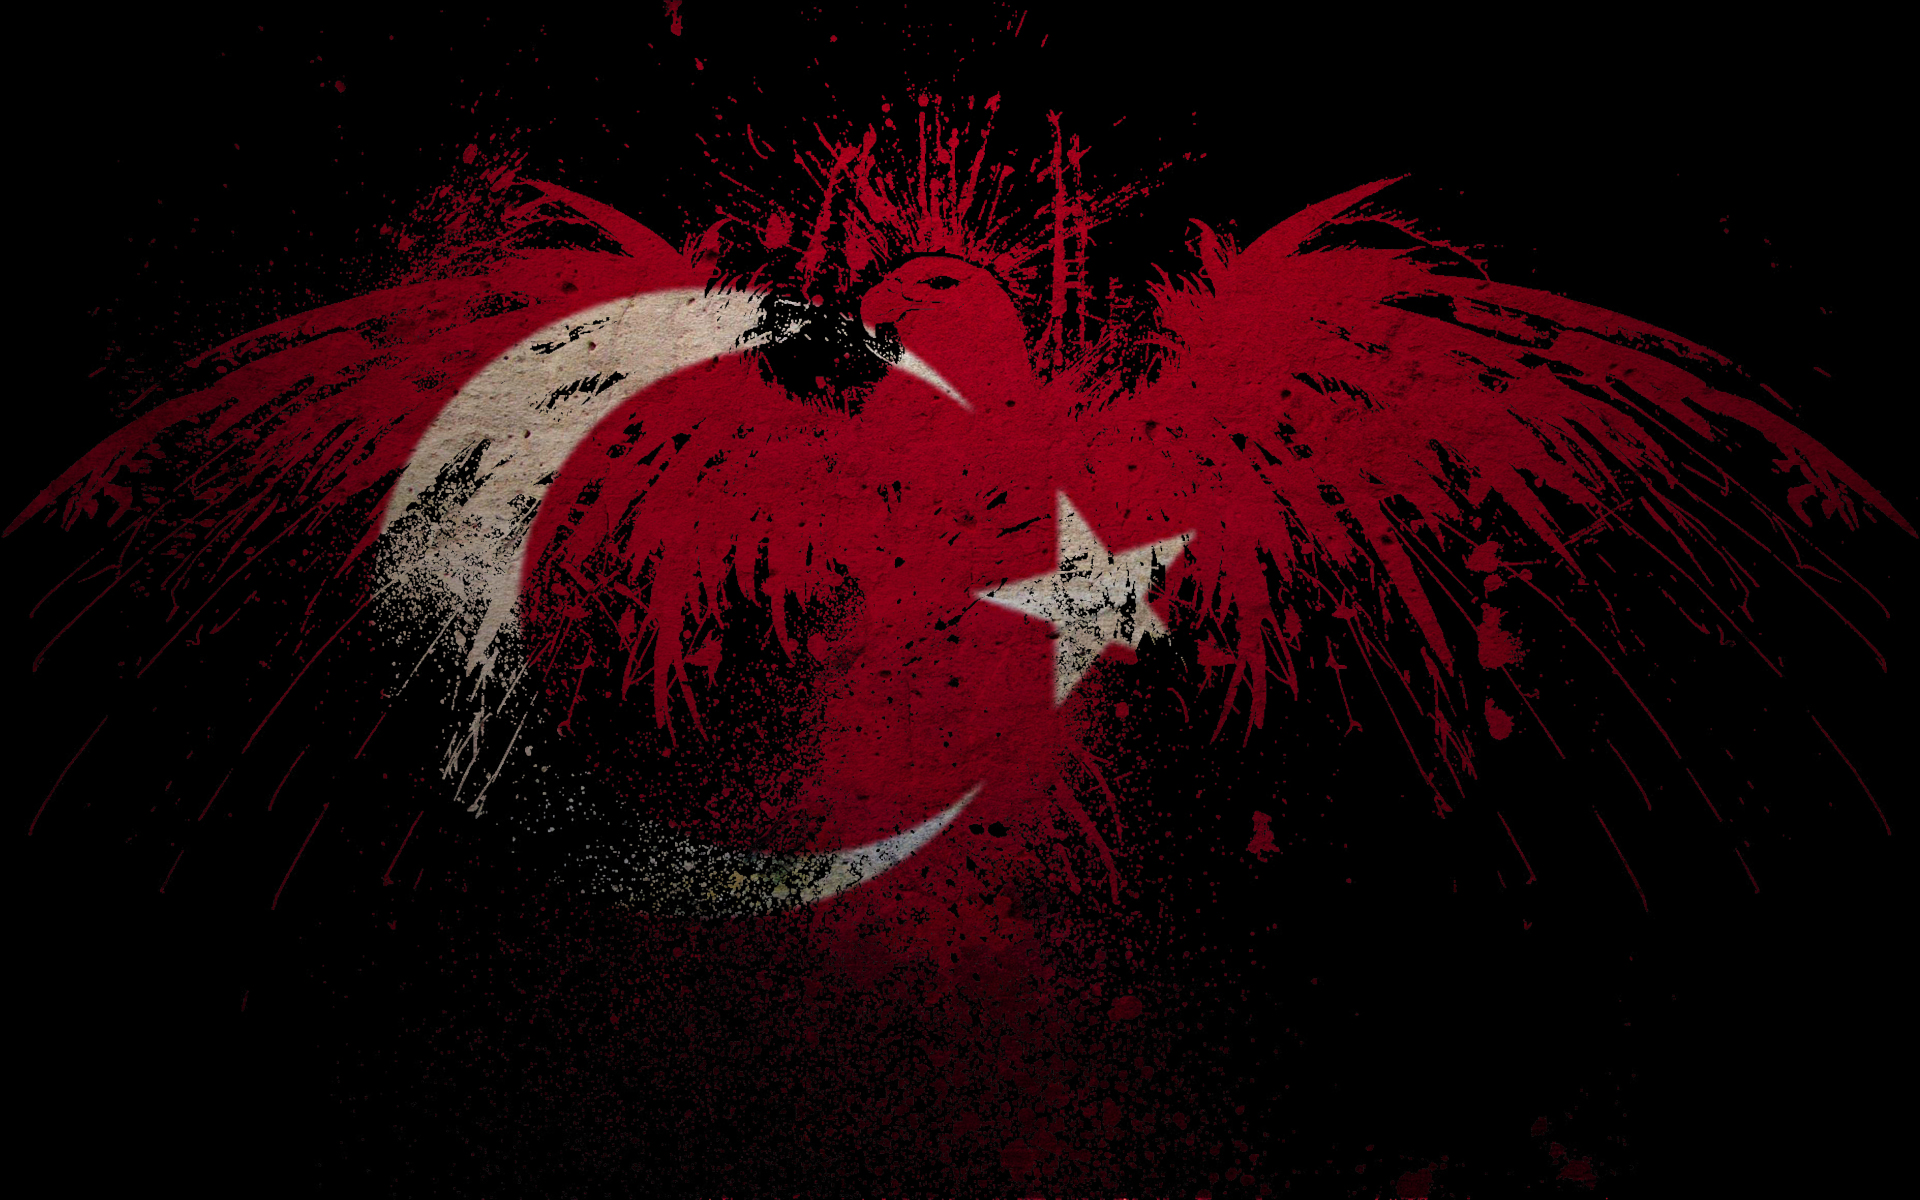 Turkish Design Wallpaper : Turkish flag by volkanbaba on deviantart